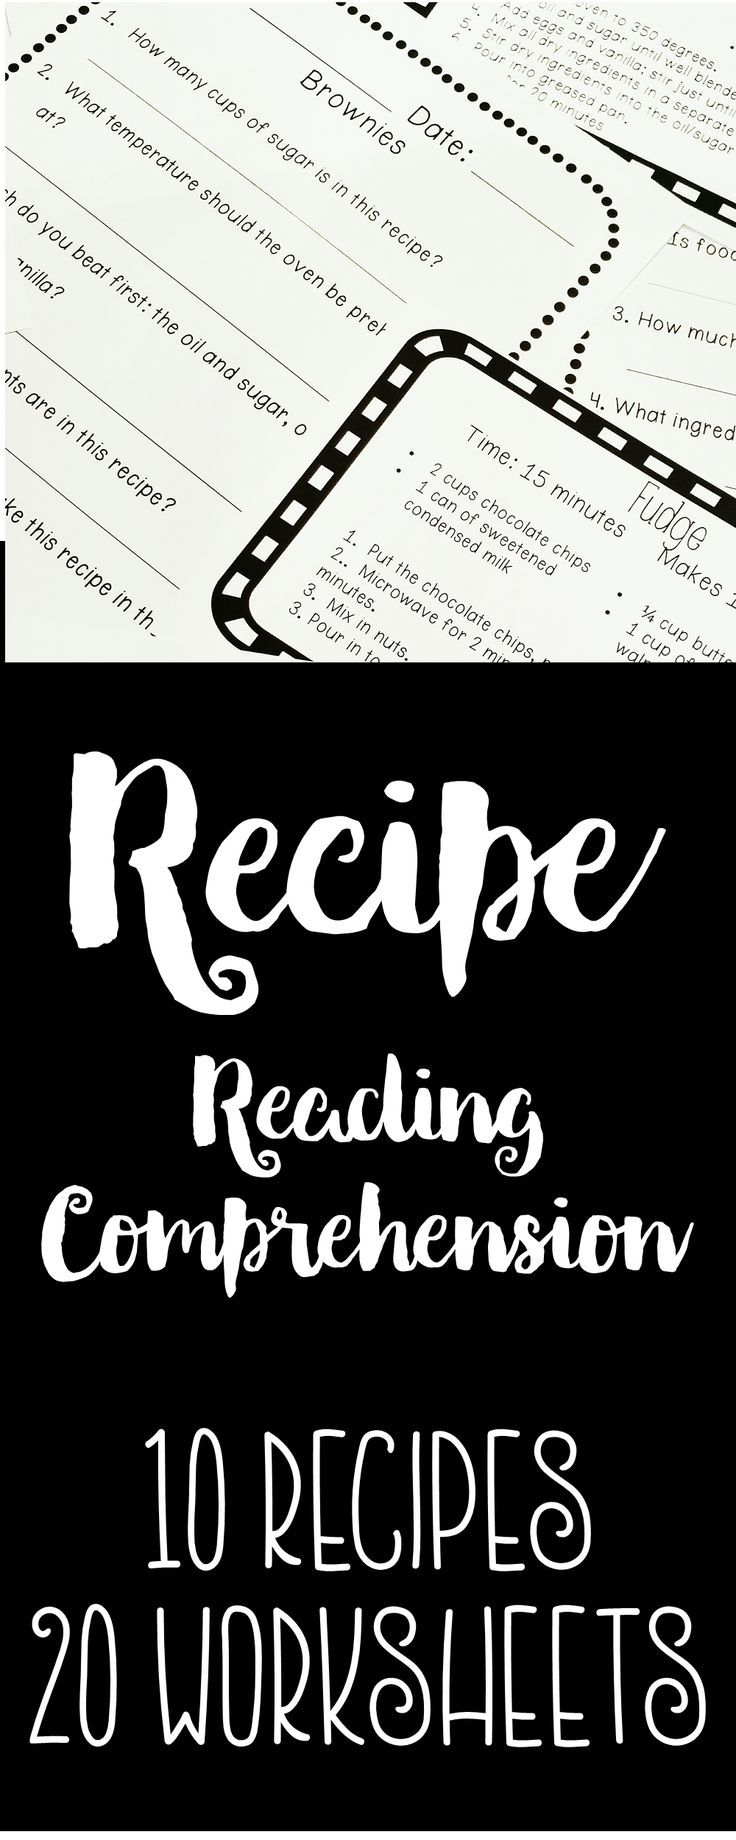 worksheet Functional Reading Comprehension Worksheets recipe reading comprehension life skills and functional literacy literacy